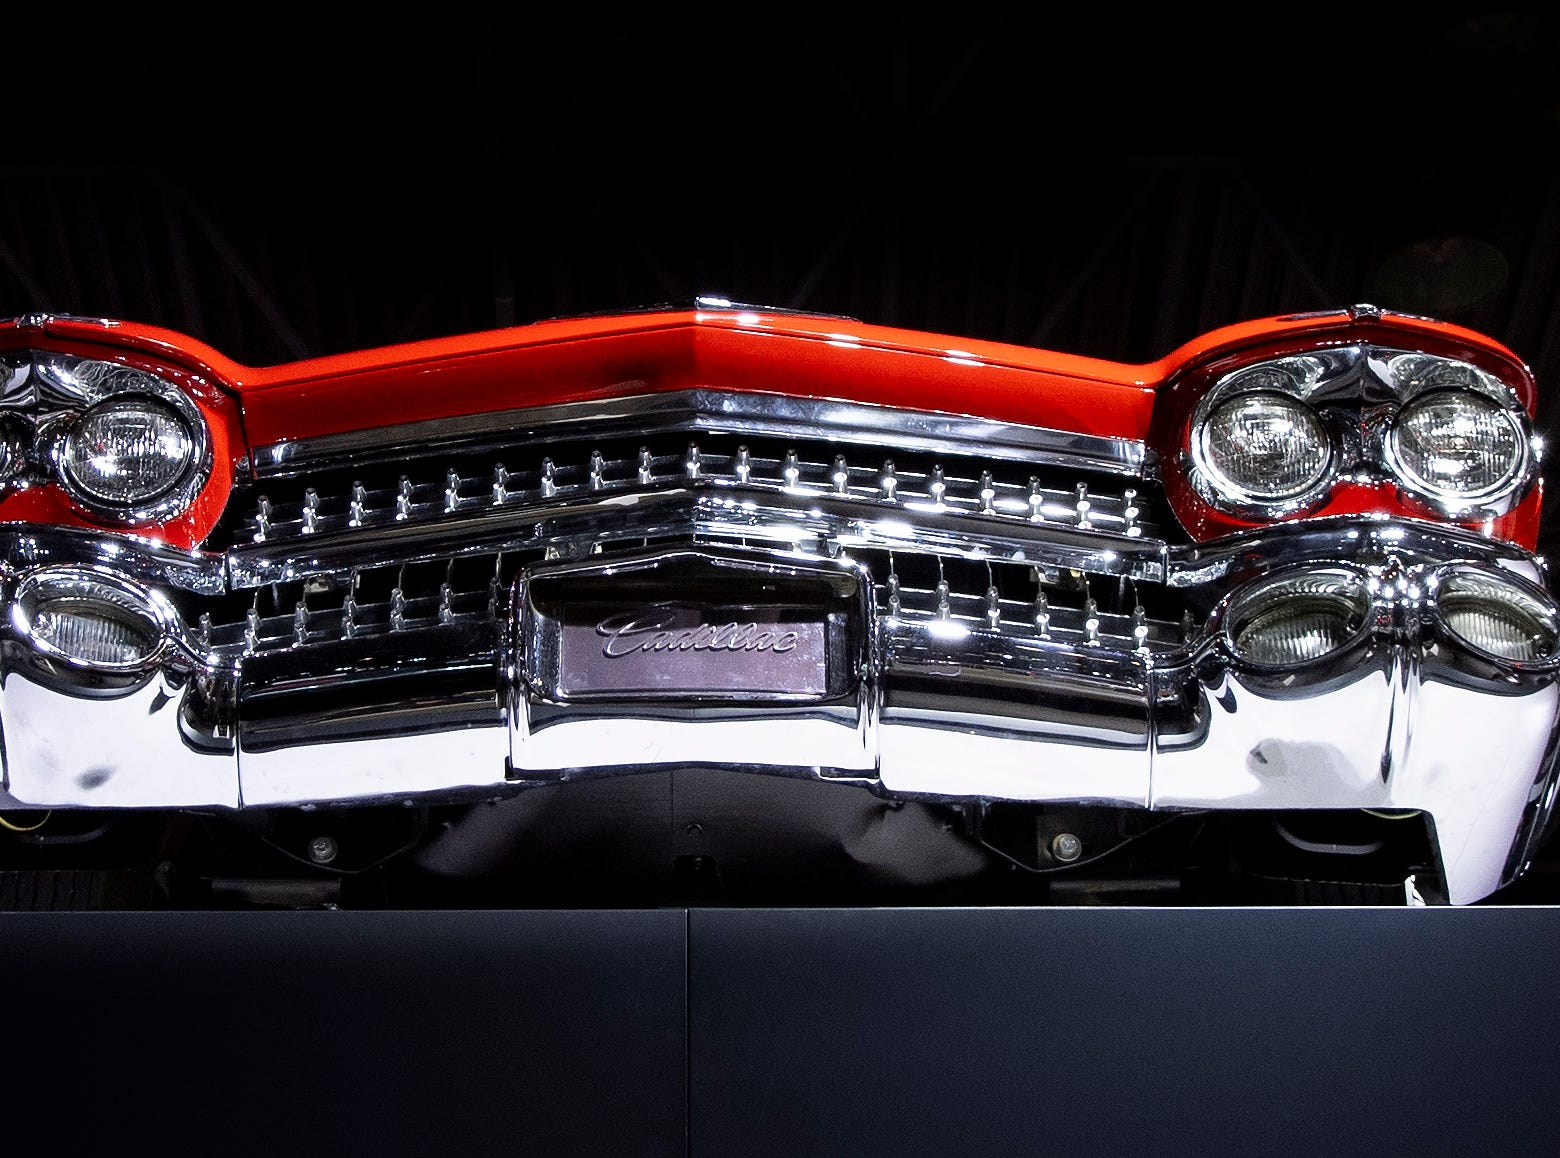 1959 Eldorado Biarritz convertible on display.